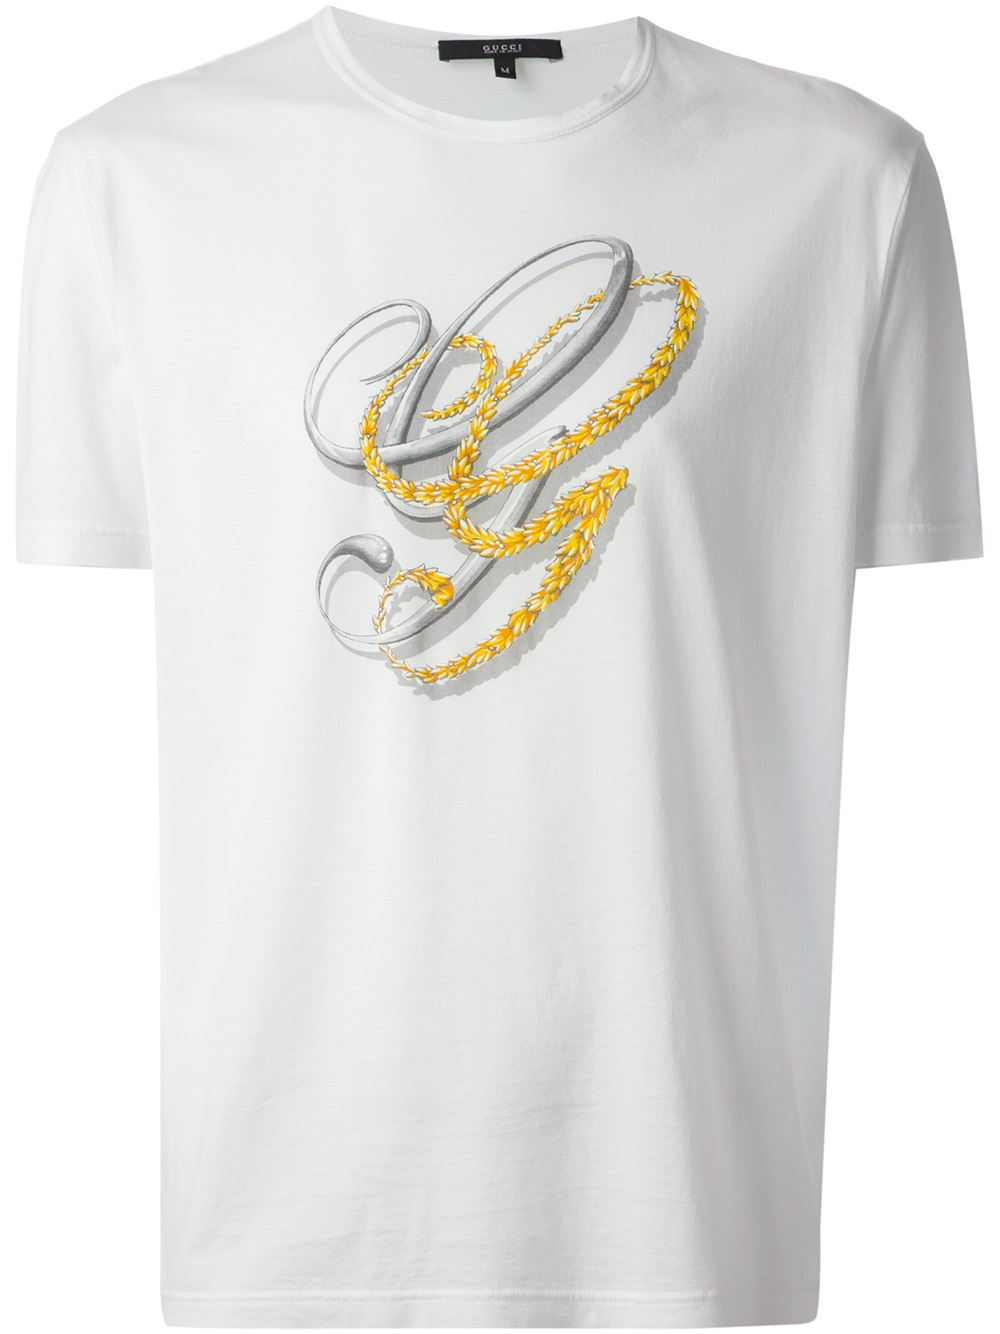 62ceb8ca630 Gucci T Shirts Cheap